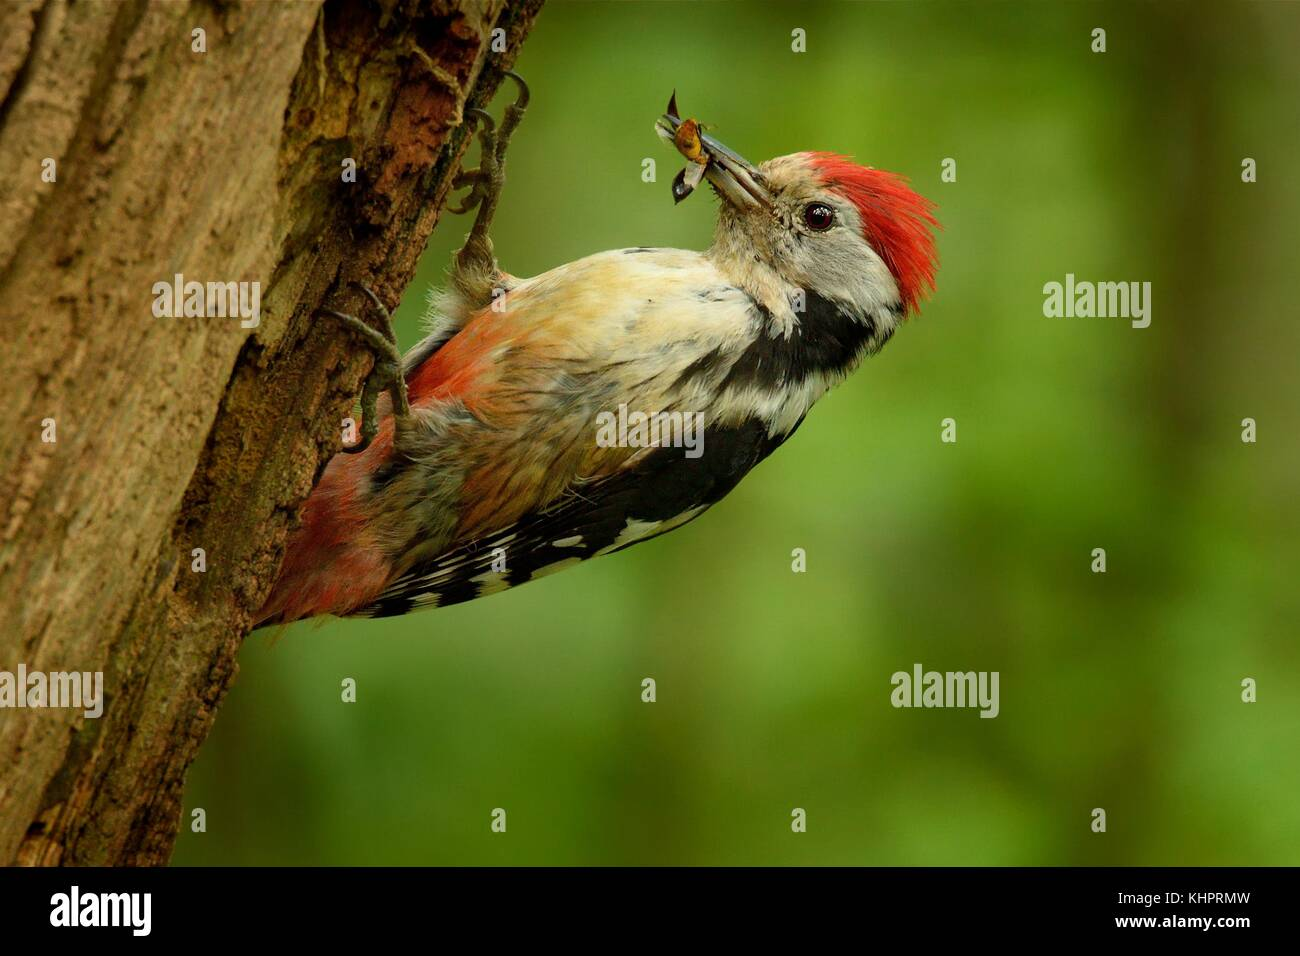 Middle Spotted Woodpecker - Dendrocopos medius sitting on the tree trunk with full beak of the feeding, green forest - Stock Image